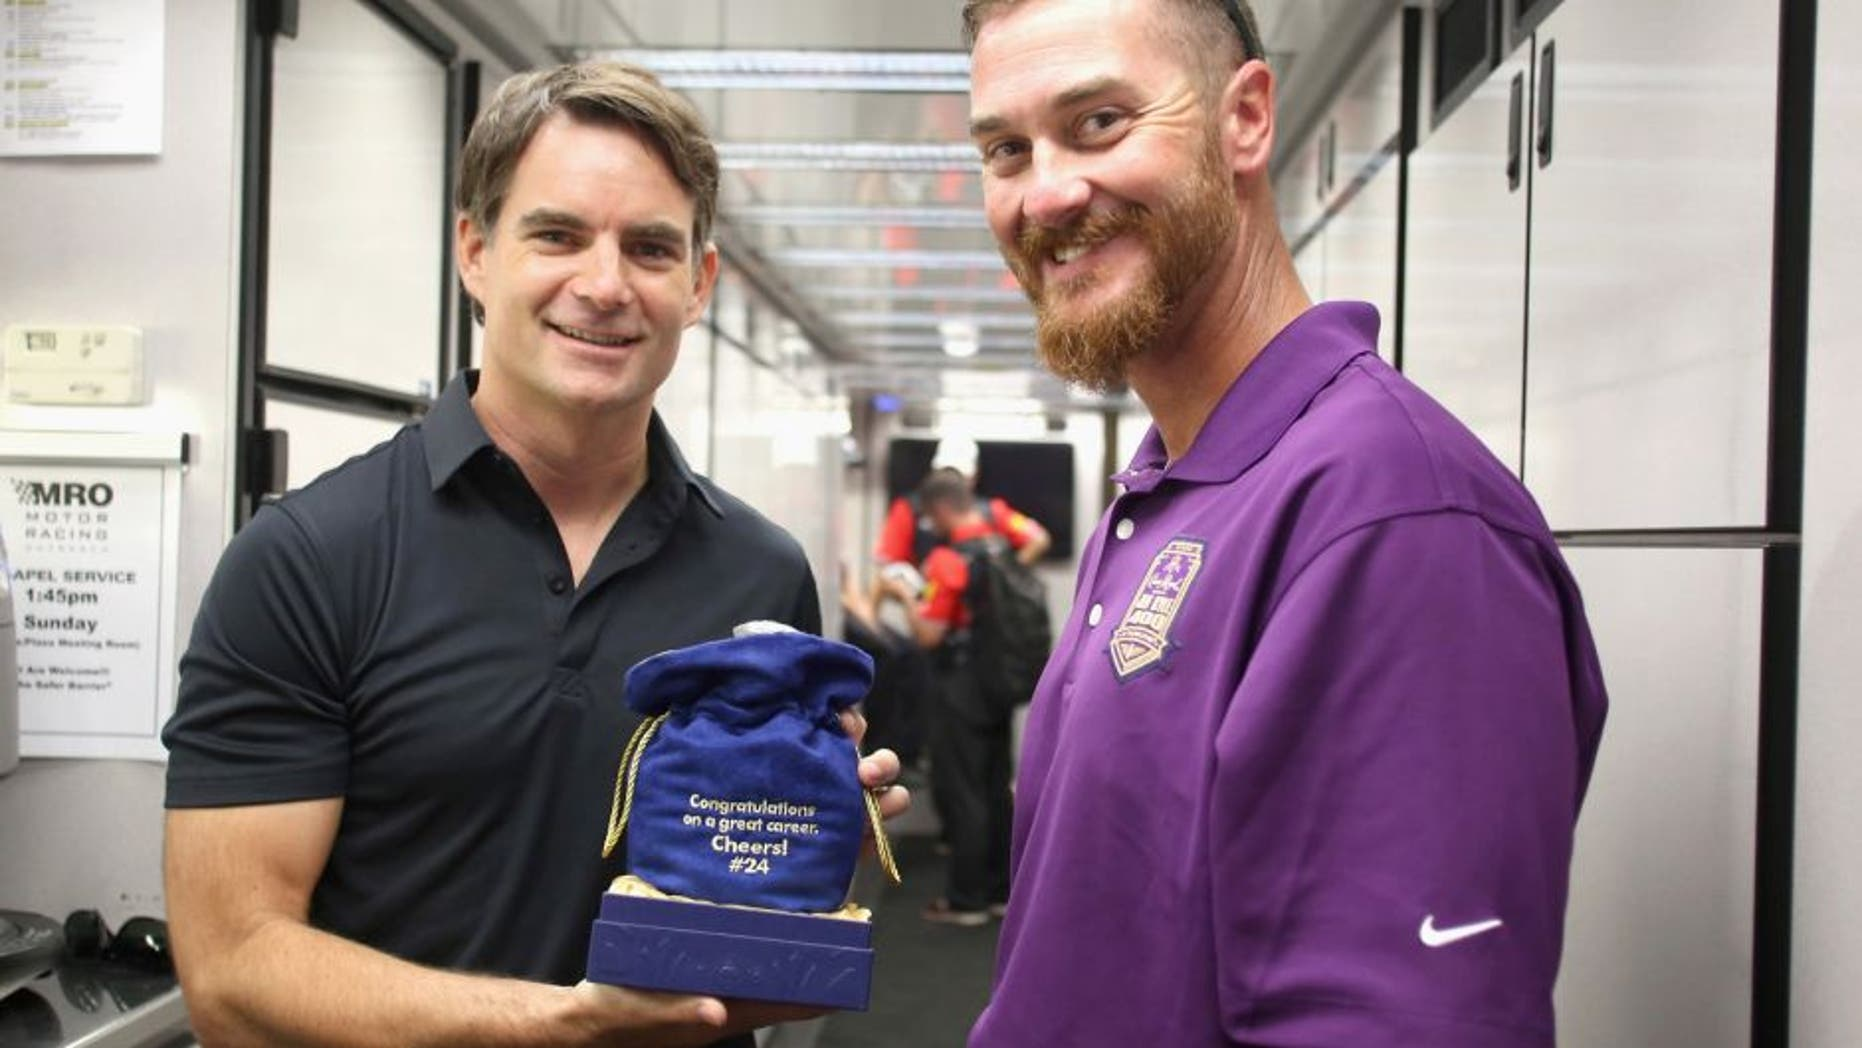 INDIANAPOLIS, IN - JULY 25: Brickyard 400 namesake Jeff Kyle presents a bottle of Crown Royal XR to Jeff Gordon at Indianapolis Motor Speedway on July 25, 2015 in Indianapolis, Indiana. (Photo by Marianna Massey/Getty Images for Crown Royal) *** Local Caption *** Jeff Gordon;Jeff Kyle